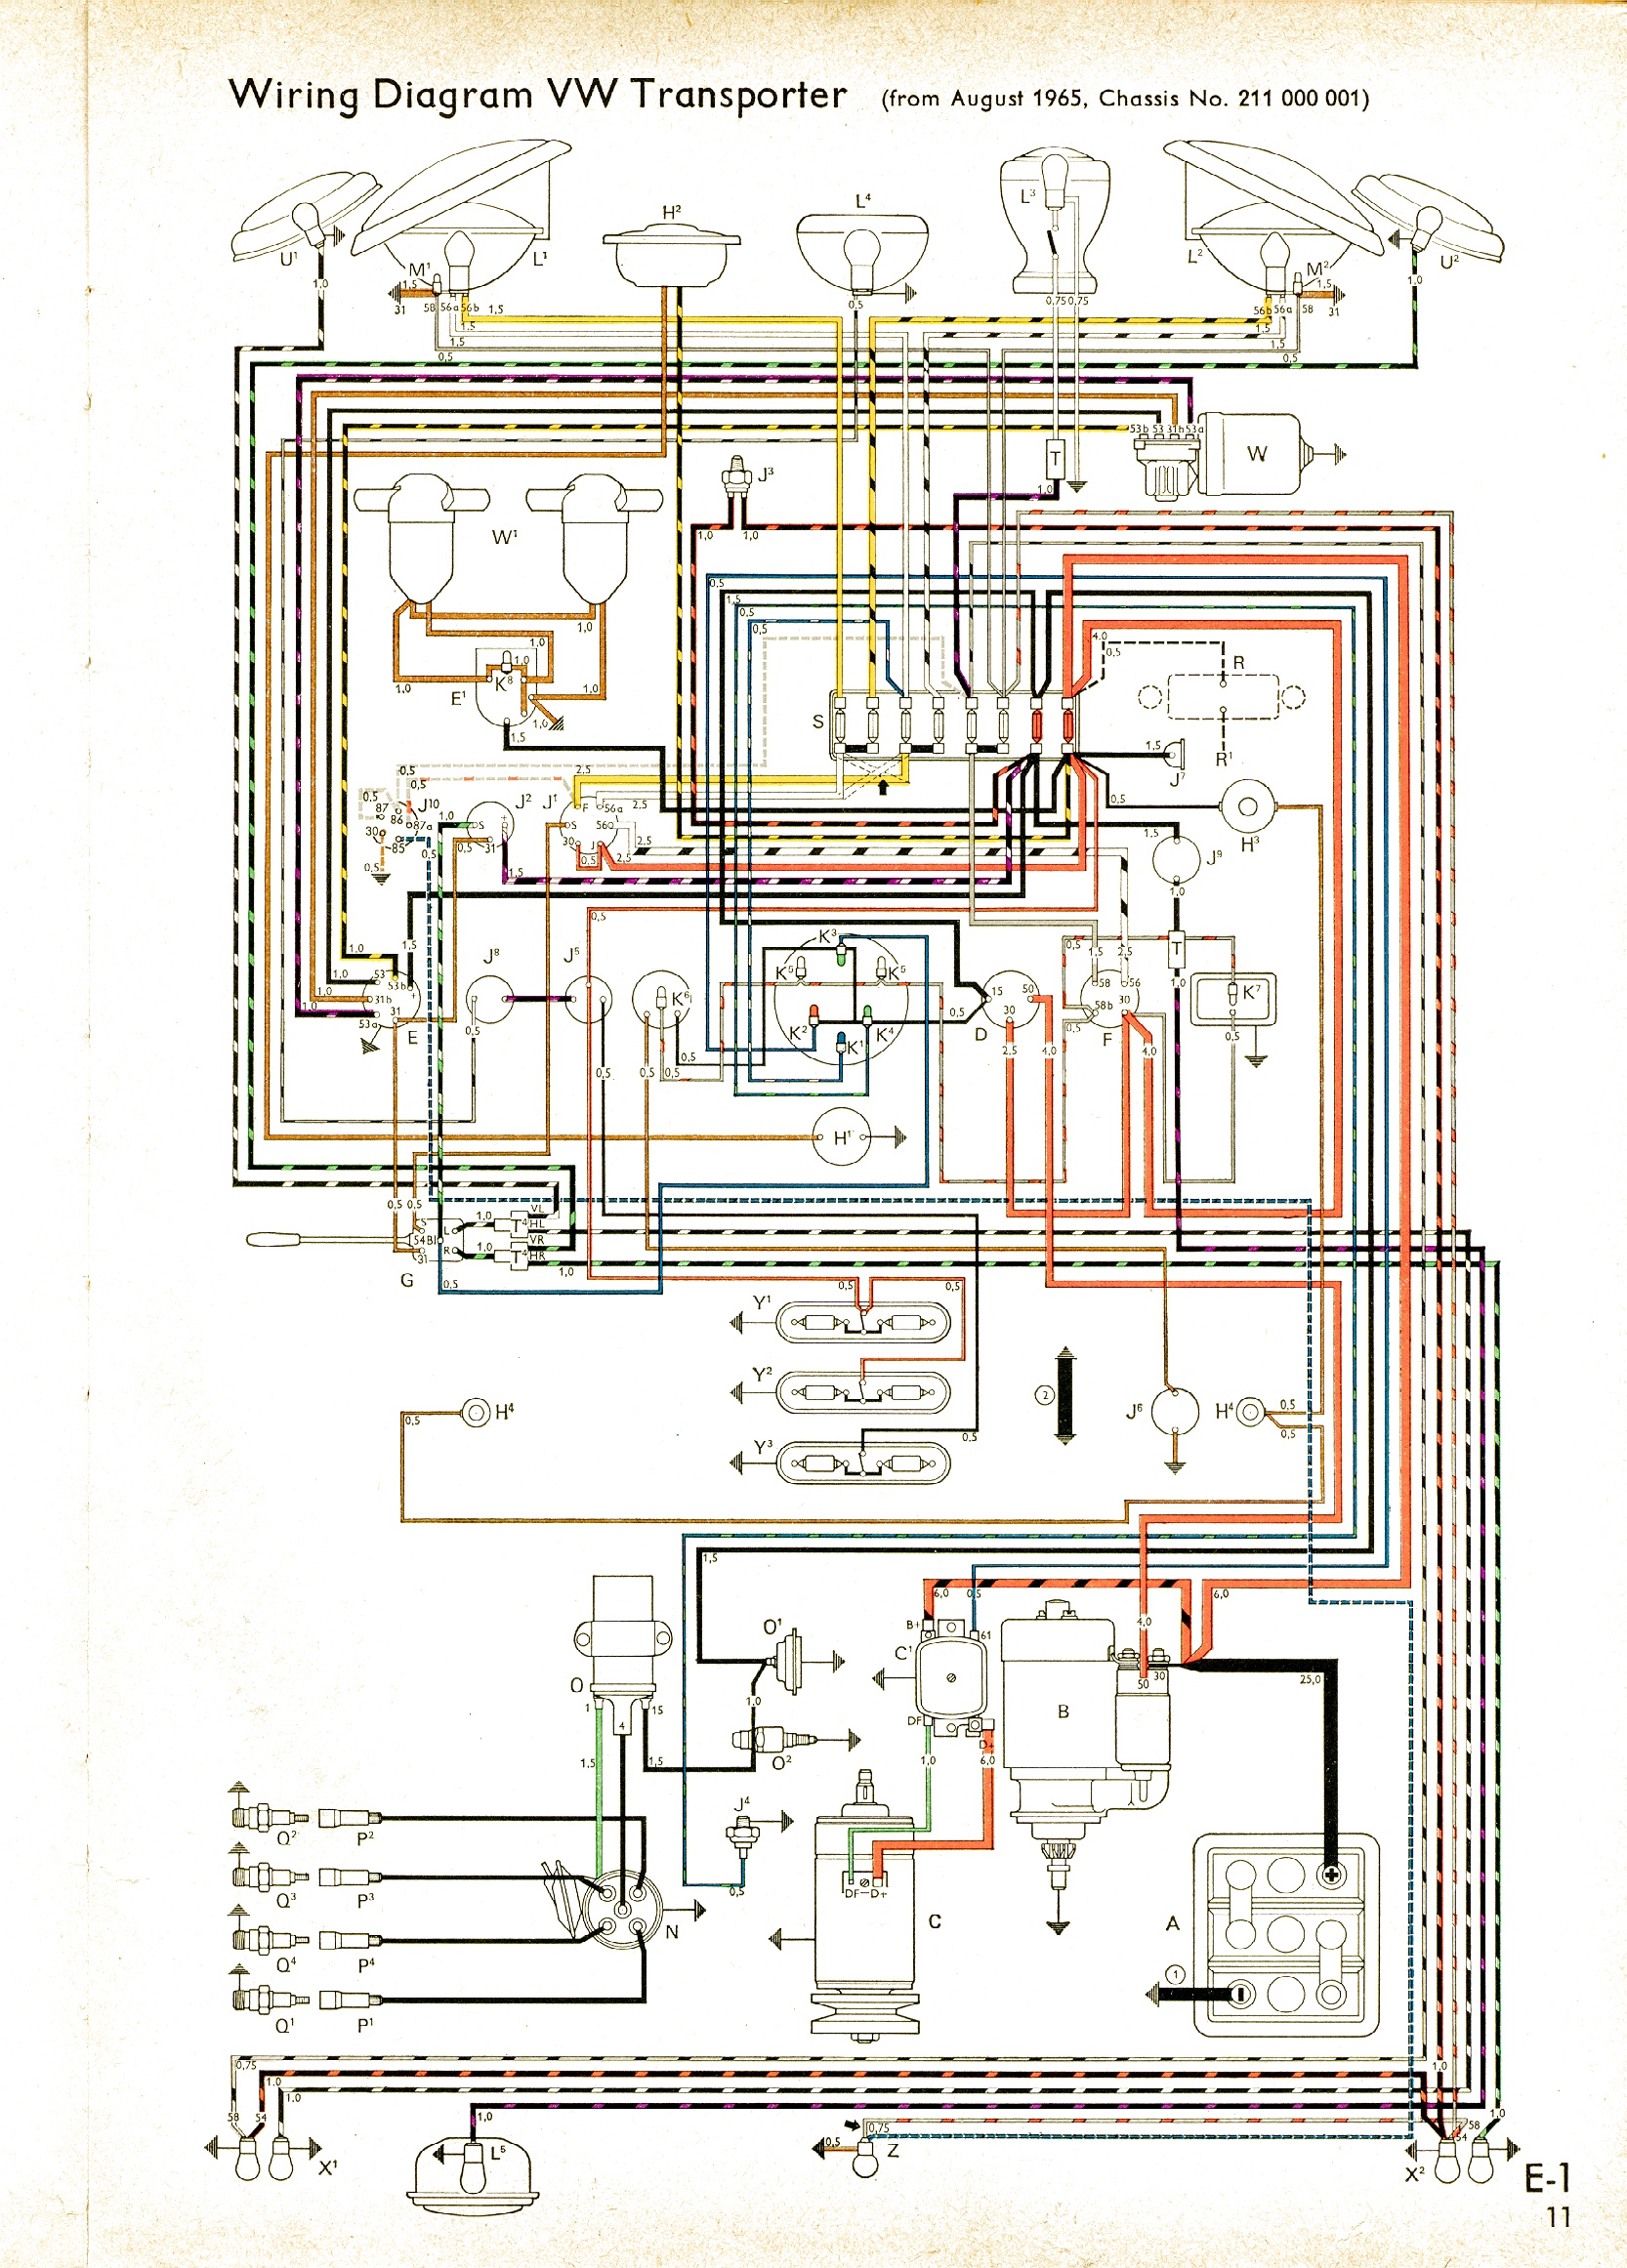 bus 65 bus wiring diagram vw wiring harness diagram \u2022 wiring diagrams j Volkswagen Type 2 Wiring Harness at mifinder.co